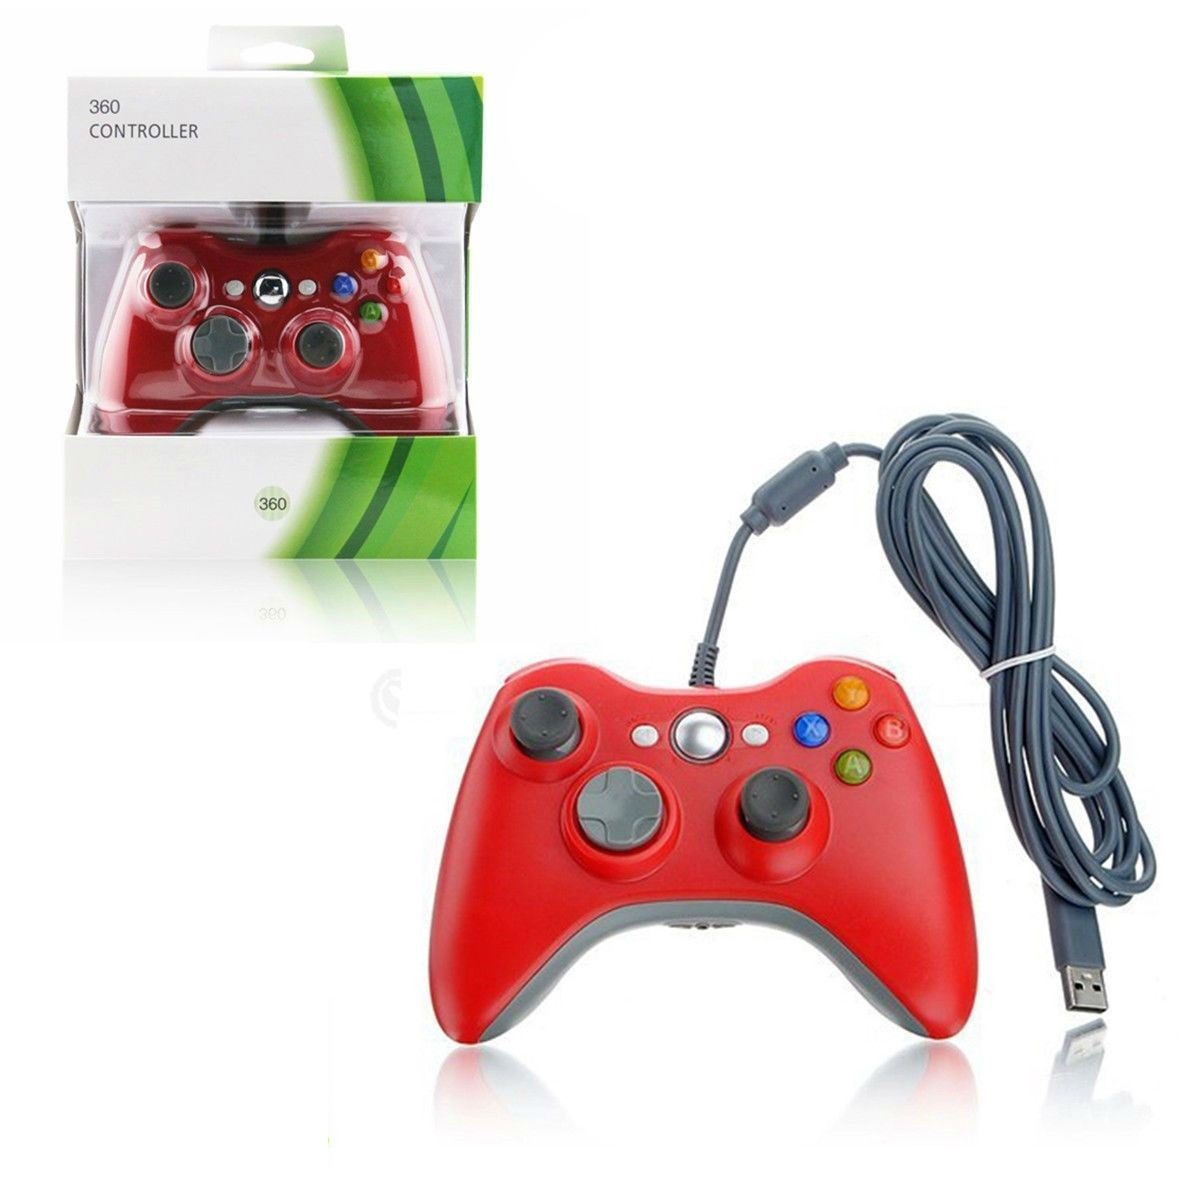 Wired USB Xbox 360 Gamepad Controller for sale in Jamaica | JAdeals.com